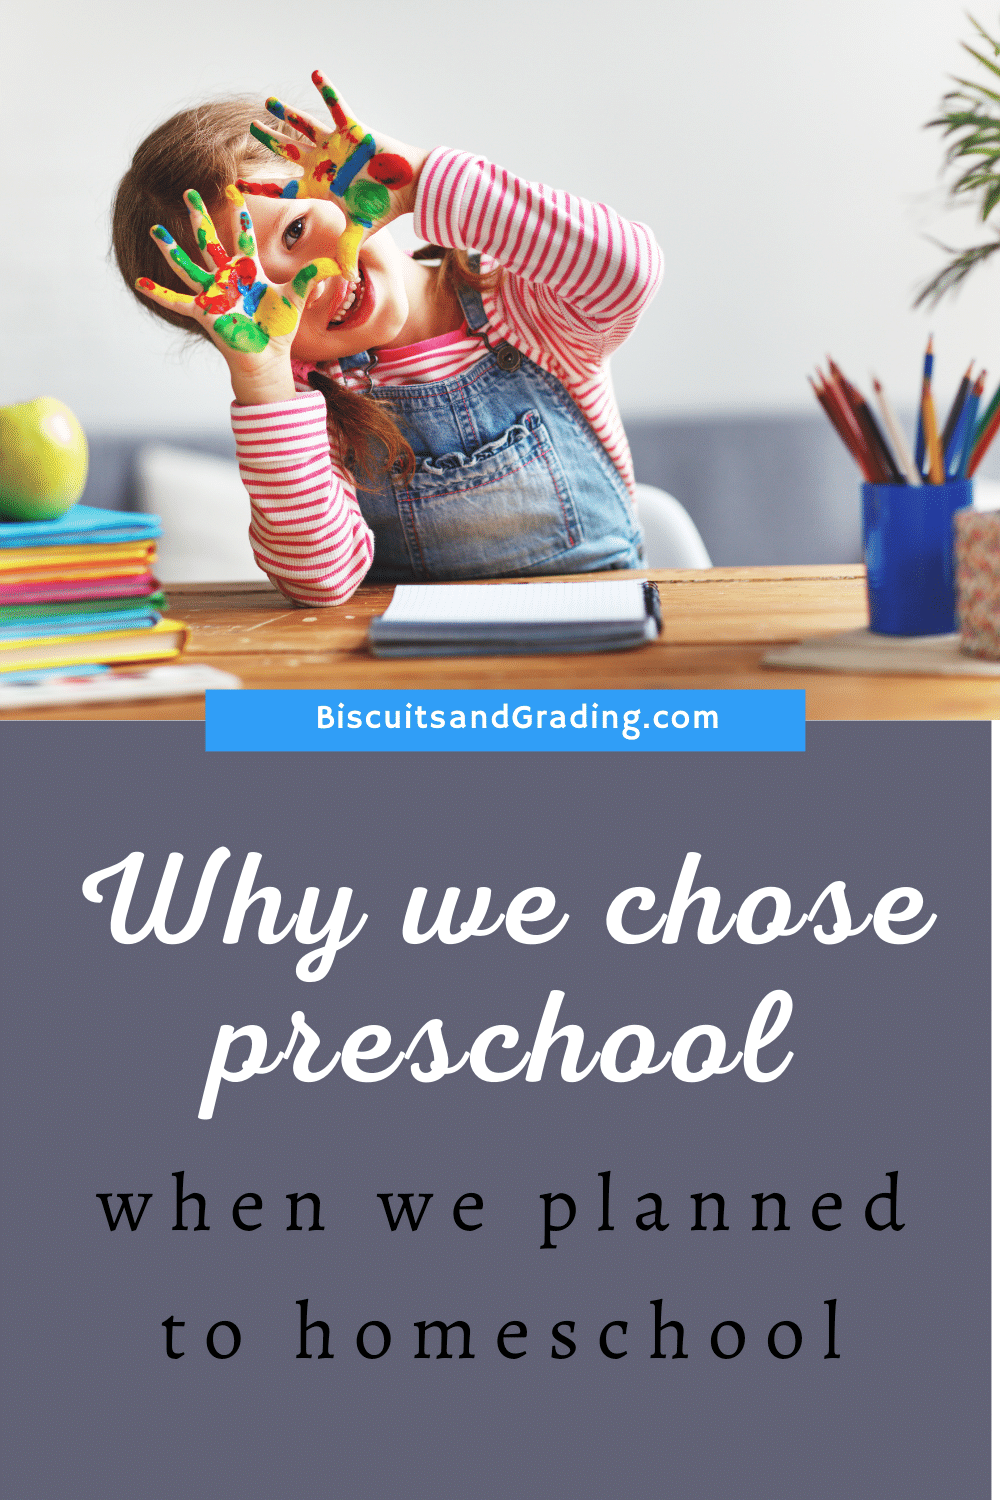 preschool planned to homeschool